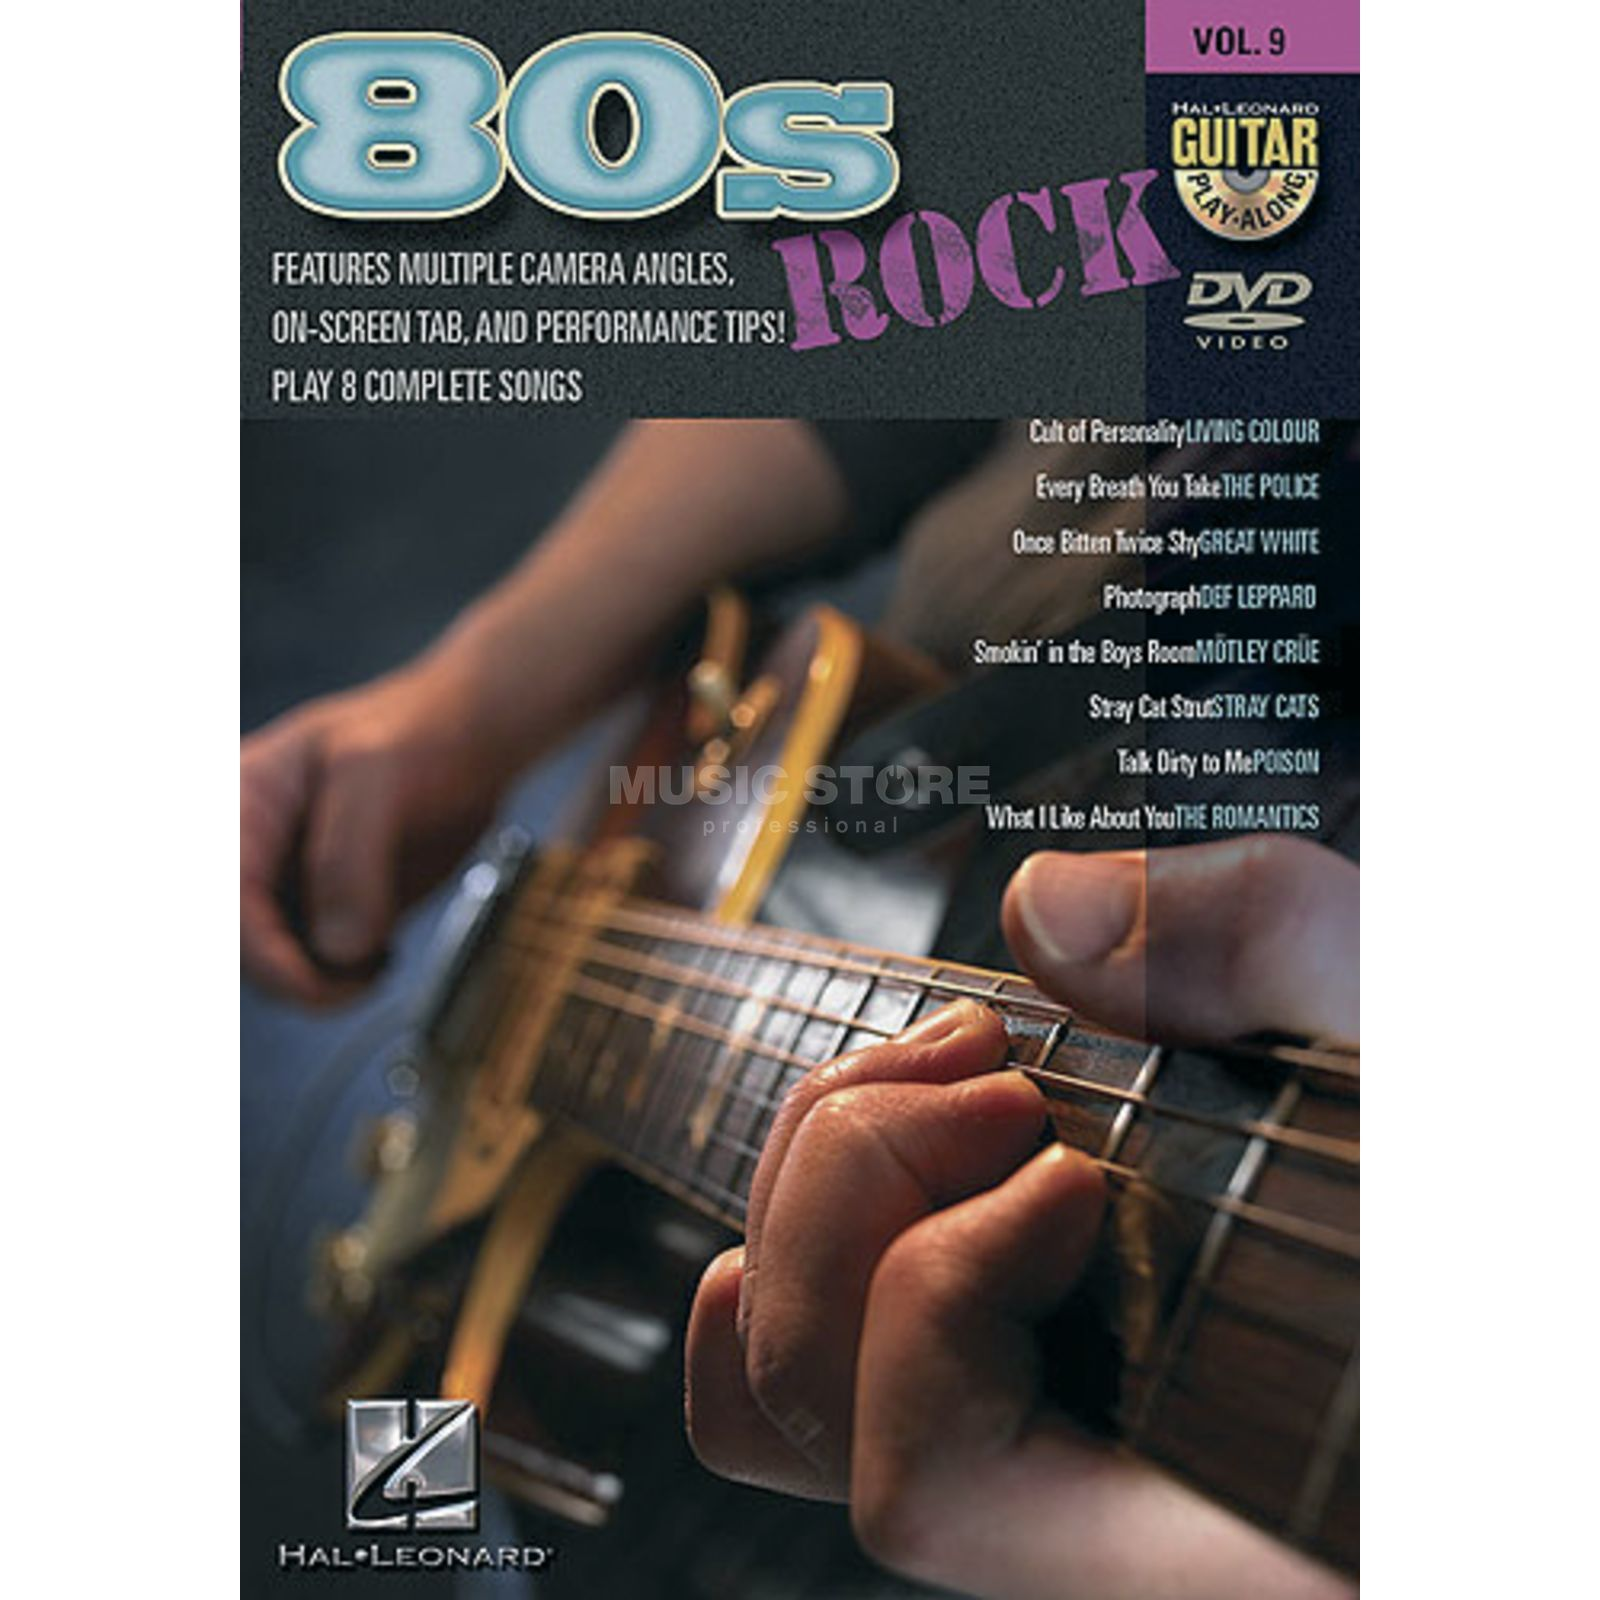 Hal Leonard Guitar Play-Along: 80s Rock Vol. 9, DVD Produktbillede